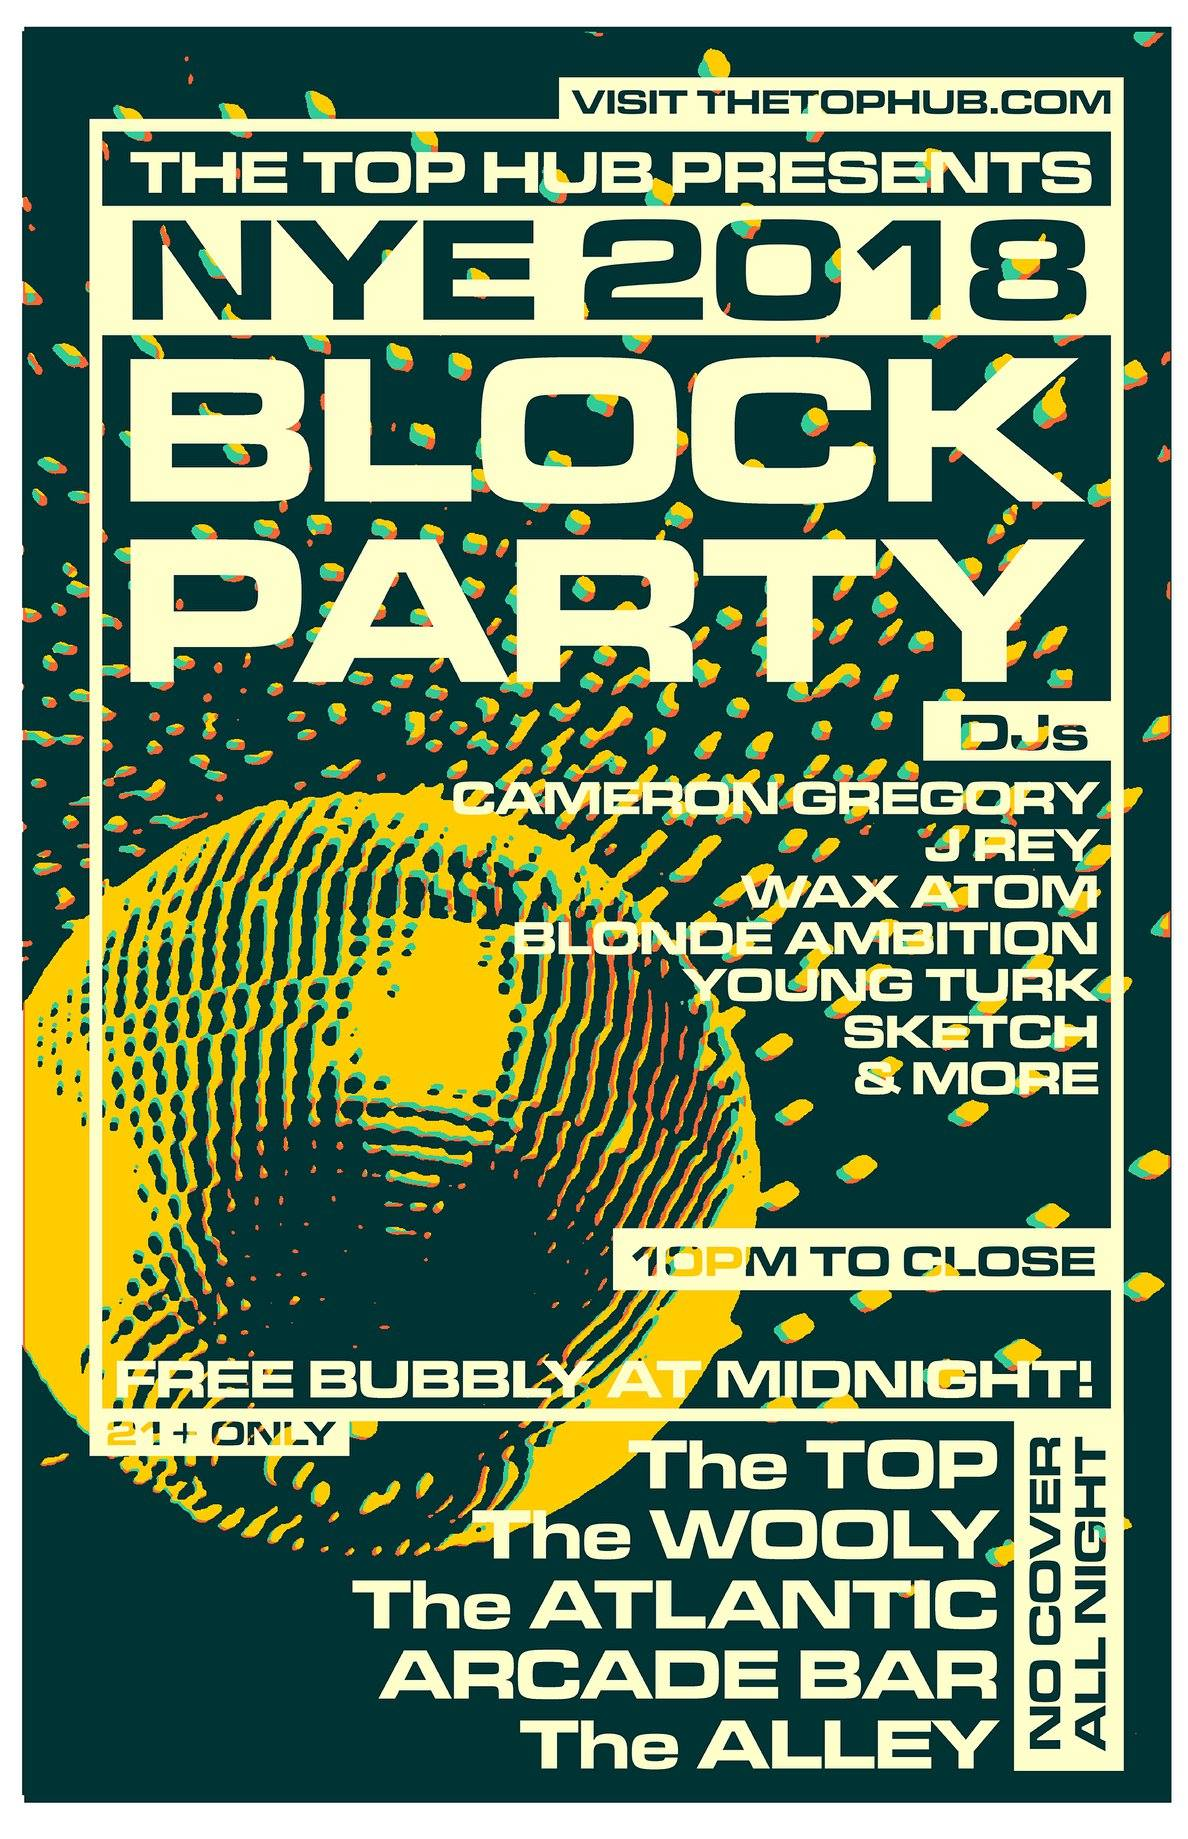 The Top Hub Presents:   🍾 ⚡️🍾⚡️🍾 ⚡️🍾   2018 NYE Block Party  Join us for an all out takeover of North Main Street on New Years Eve.   DJ's spinning at five different locations from 10pm - close: Choose your own adventure!!!  Arcade Bar (3rd Floor) - Young Turk (Hip-Hop/Top40)  The Atlantic - DJ's Wax Atom & Blonde Ambition (80's, Punk, Motown)  The Wooly - DJ's Cameron Gregory & J Rey (70's Disco)  The Alley - DJ Sketch (House/Techno)  the TOP (back patio) - DJ TBA  🍾 ⚡️🍾⚡️🍾 ⚡️🍾   Free bubbly at midnight!  No cover, 21+ only  Spread the word!